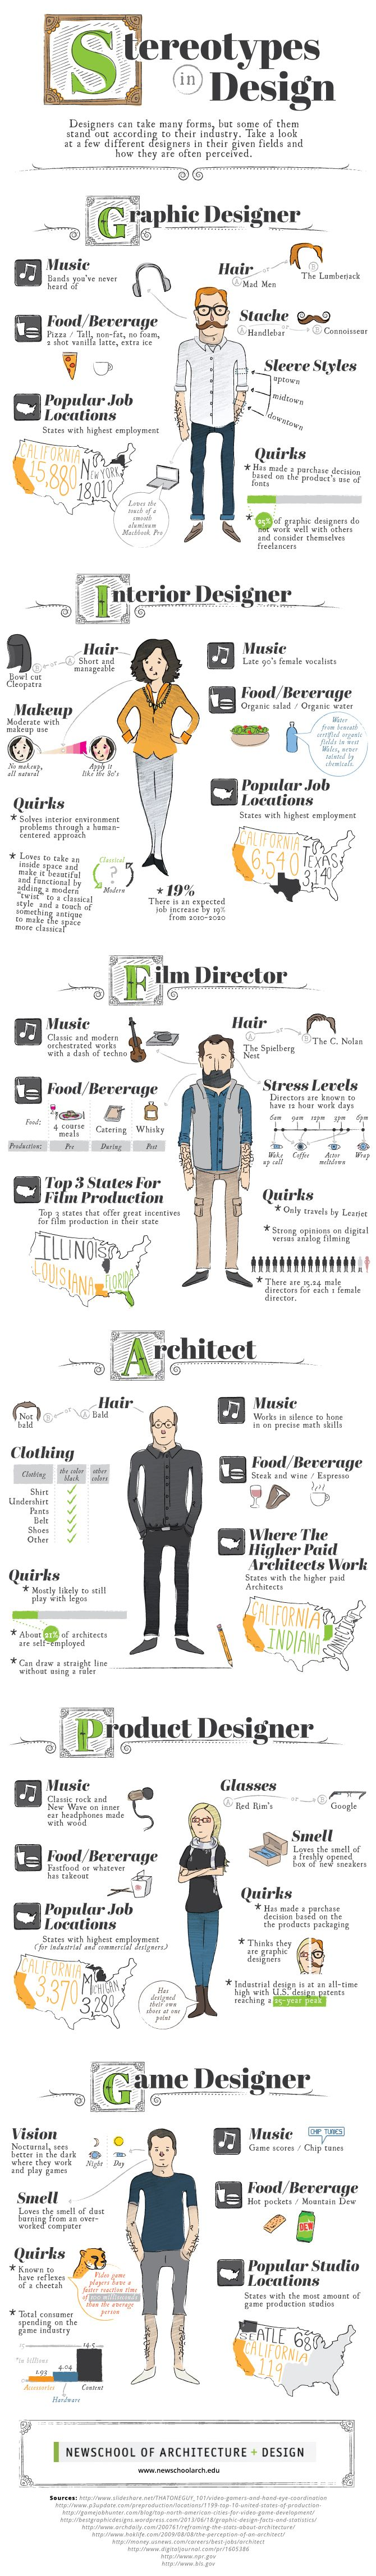 Stereotype designers by the Newschool of Architecture